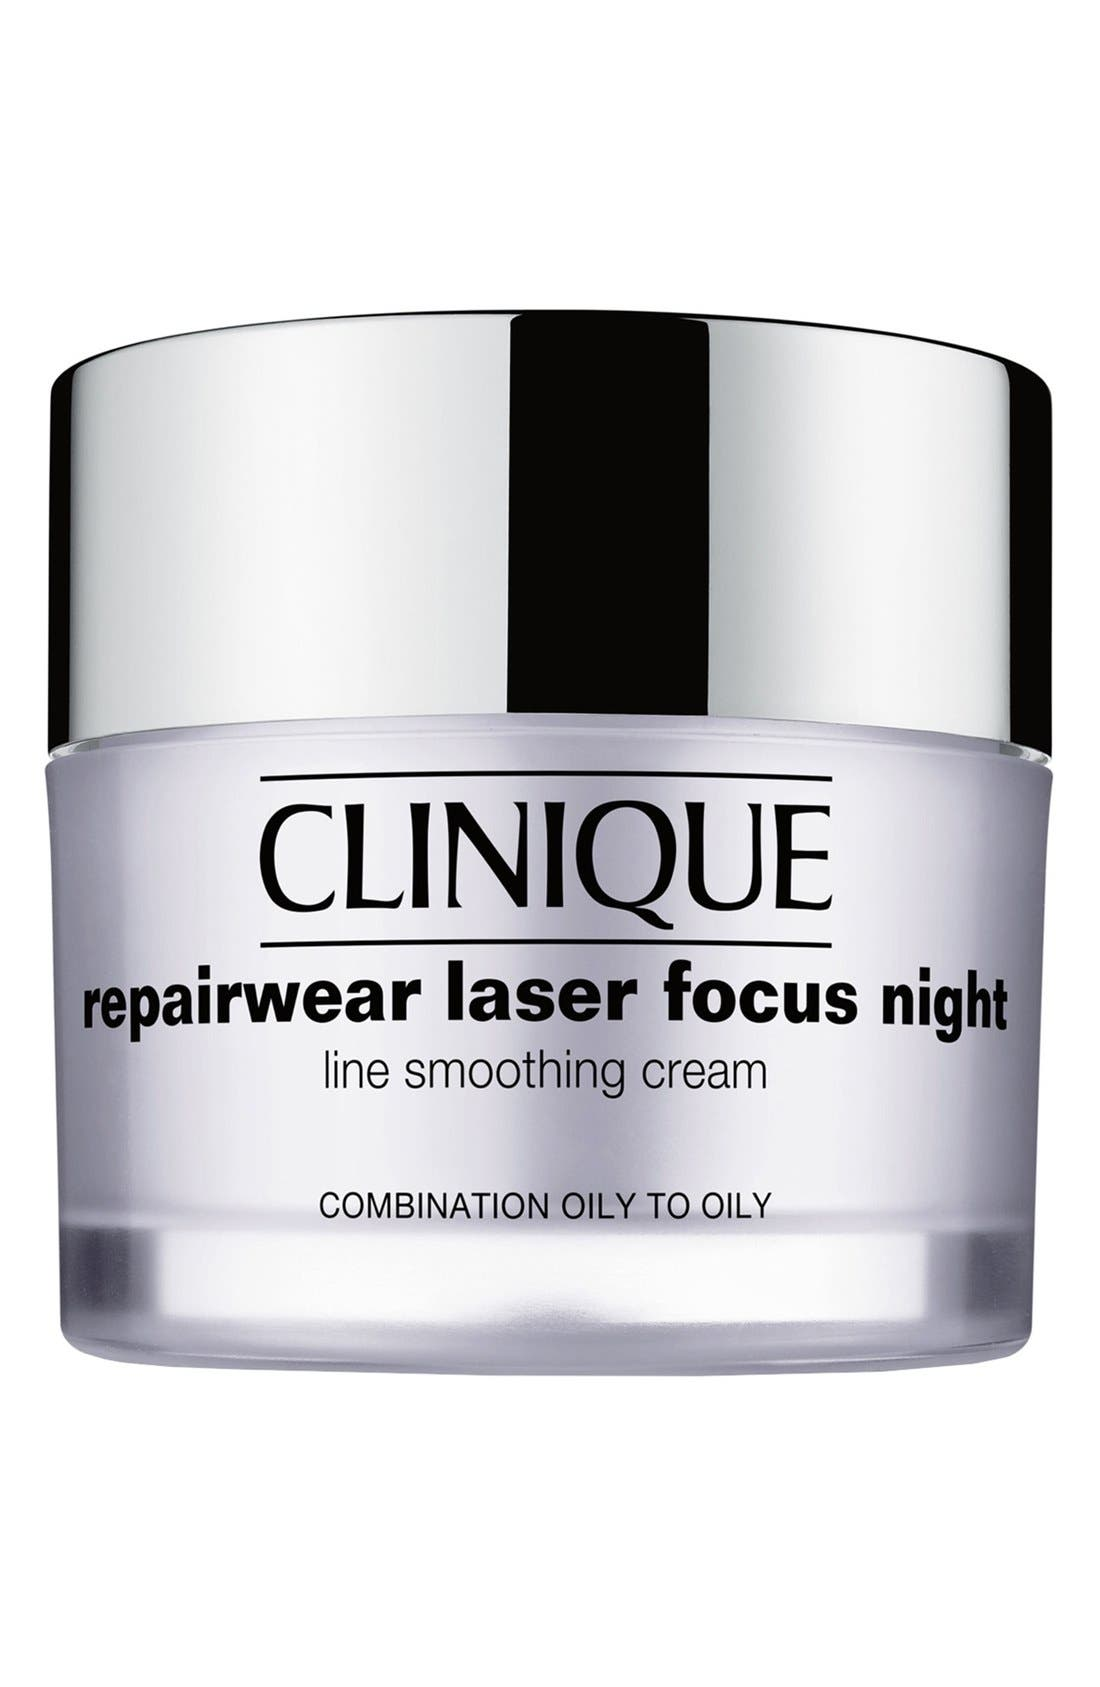 Repairwear Laser Focus Night Line Smoothing Cream for Combination Oily to Oily Skin,                             Main thumbnail 1, color,                             COMBINATION OILY TO OILY